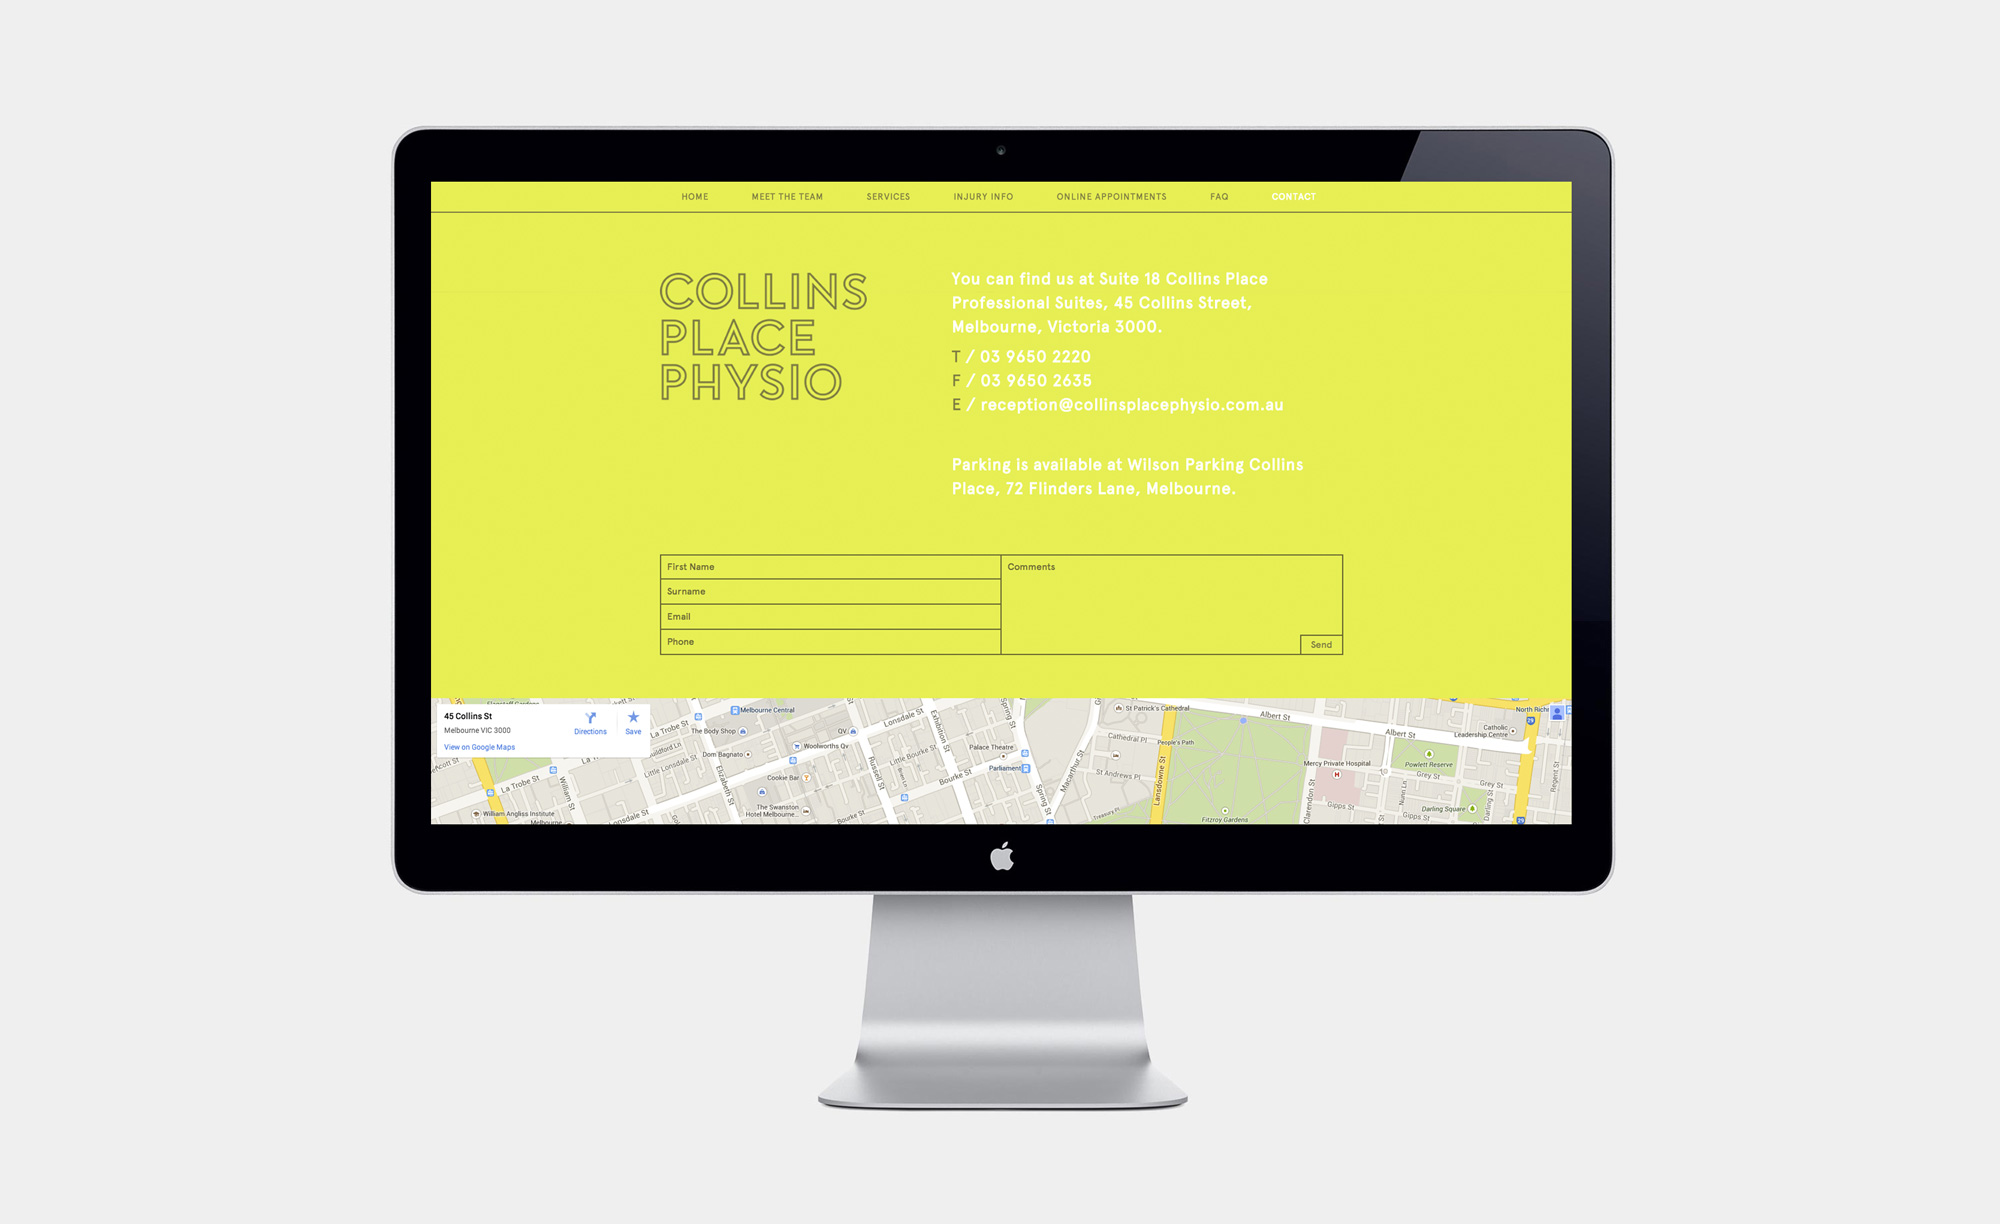 Contact details on the Collins Place Physio website